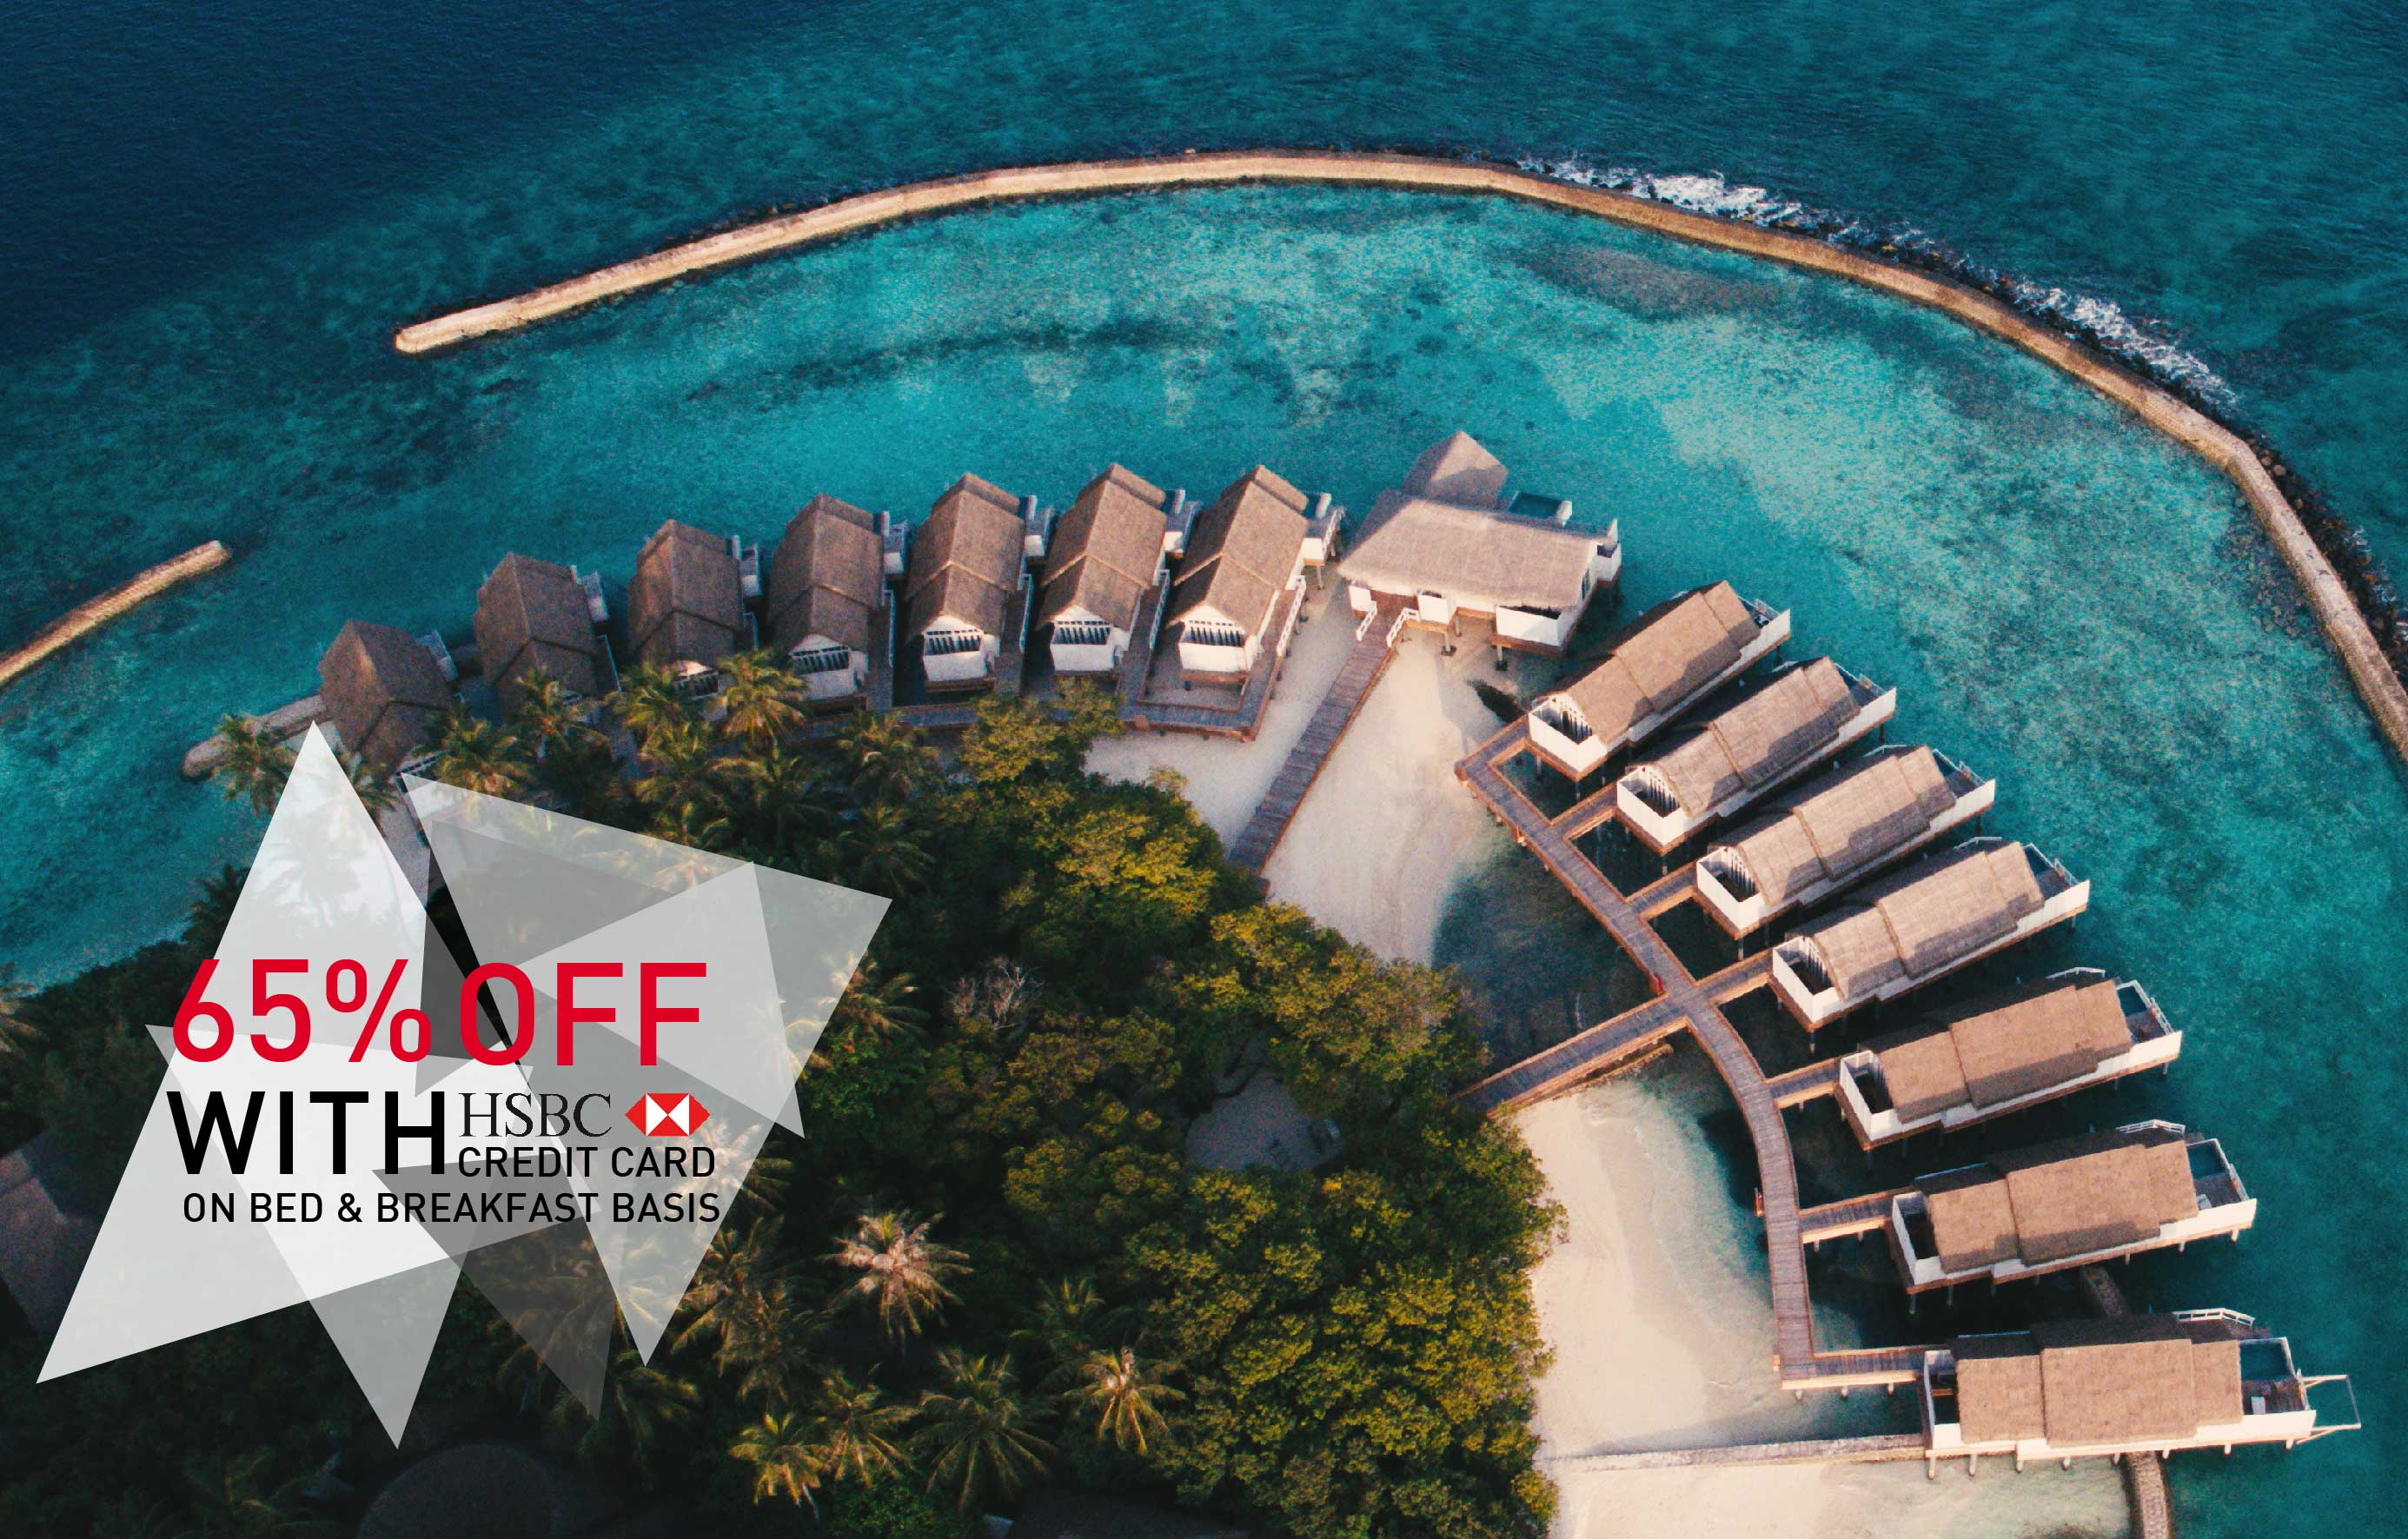 65% Off Exclusive Offer for HSBC Credit Cardholders